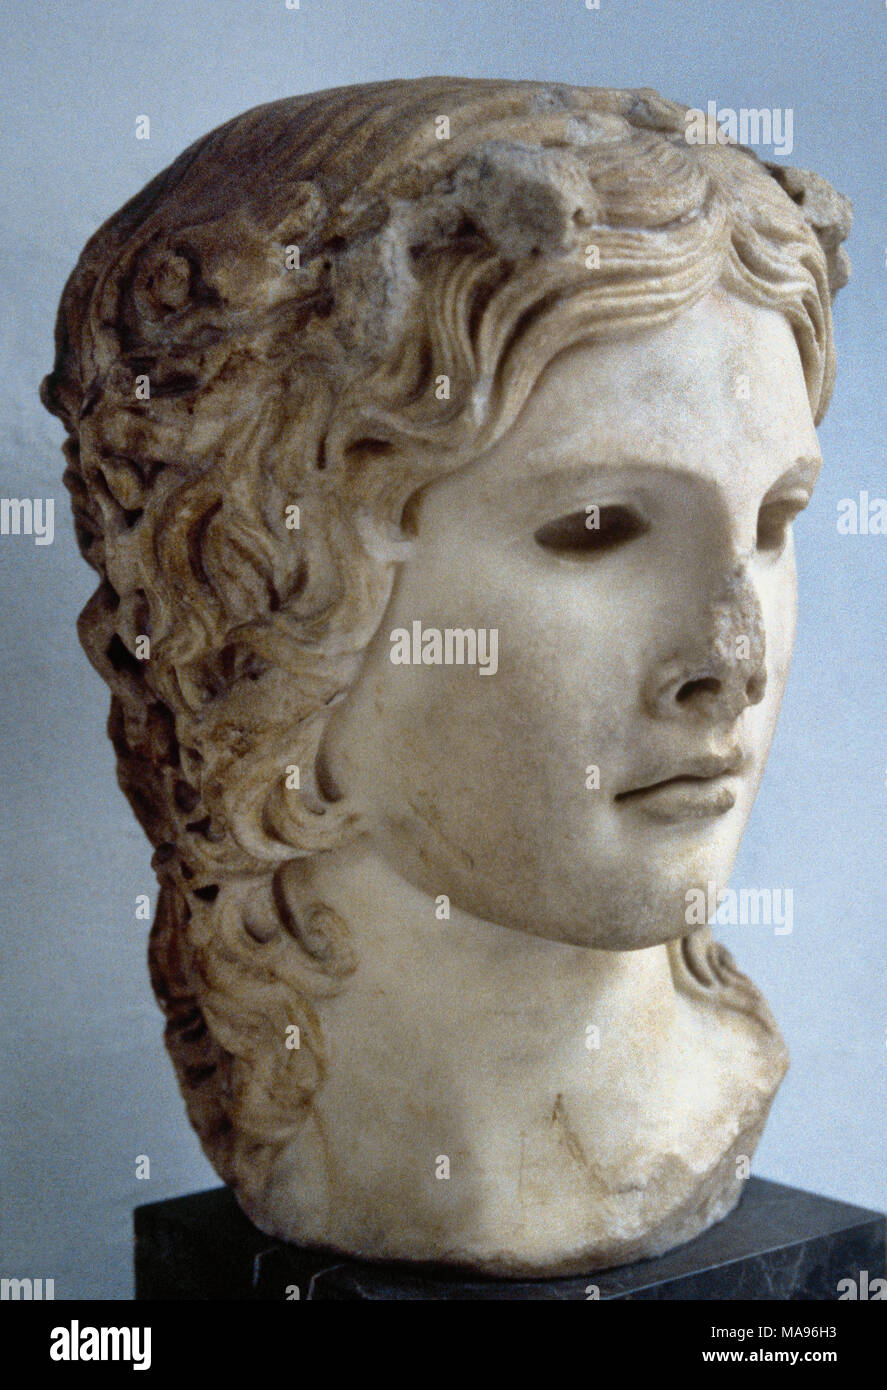 Dionysus (Roman Bacchus). God of the grape harvest and wine. Roman copy (2nd century) after a Greek original bust (2nd century BC). British Museum. London, England. - Stock Image